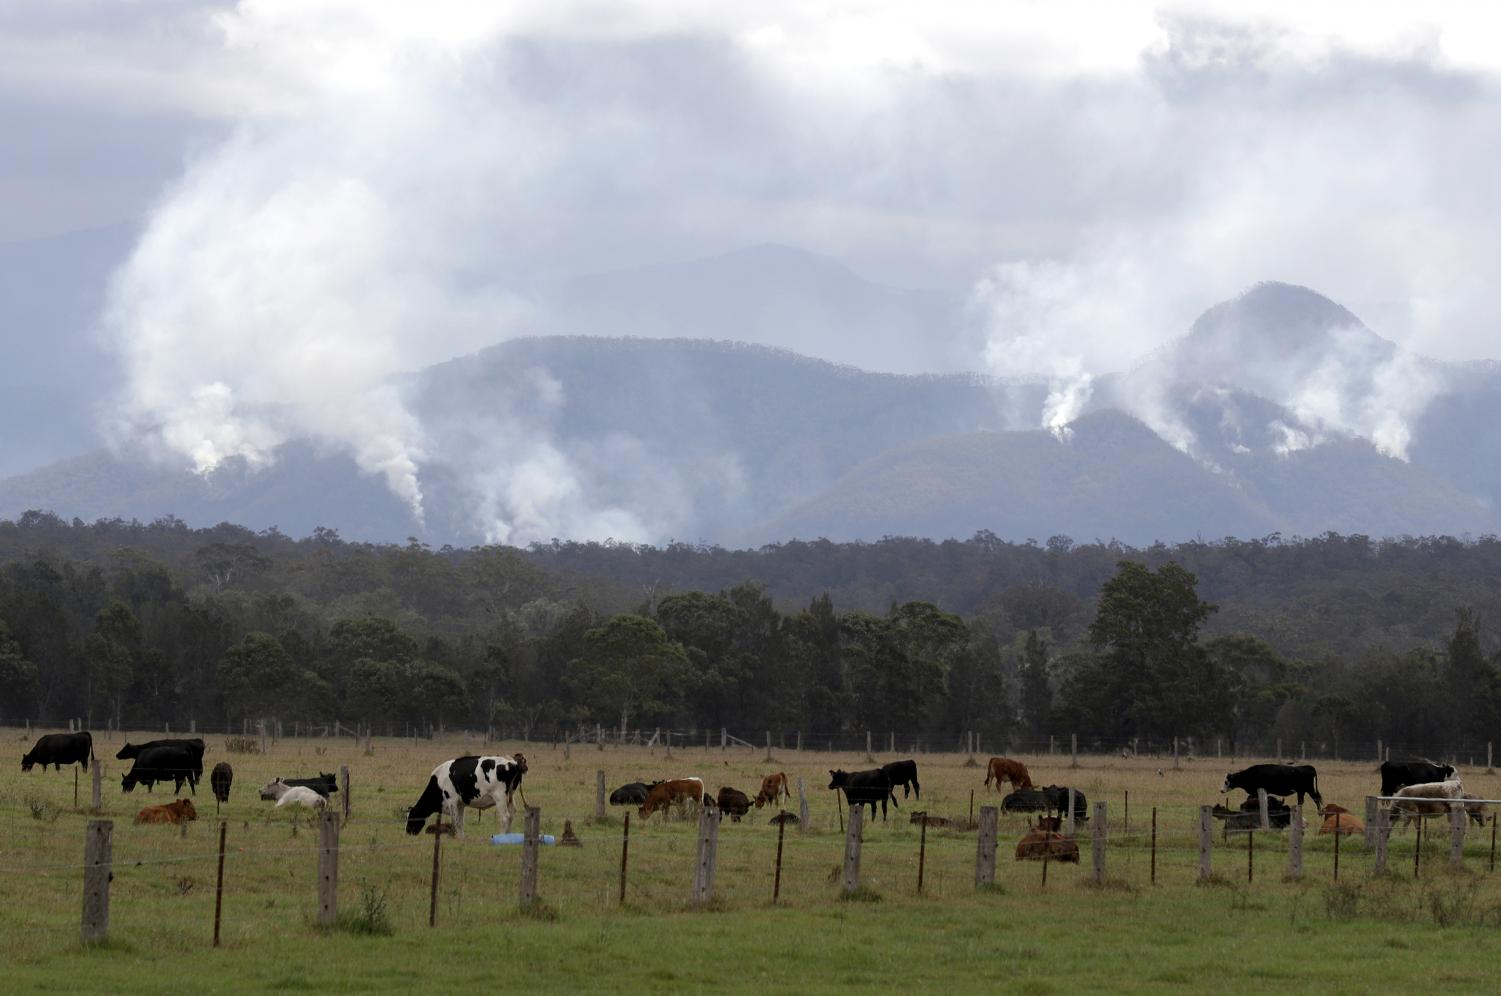 Australia Wildfires Image ID : 20009182029151 Cattle graze in a field as smoke rises from burning fires on mountains near Moruya, Australia, Thursday, Jan. 9, 2020. The wildfires have destroyed 2,000 homes and continue to burn, threatening to flare up again as temperatures rise. (AP Photo/Rick Rycroft)